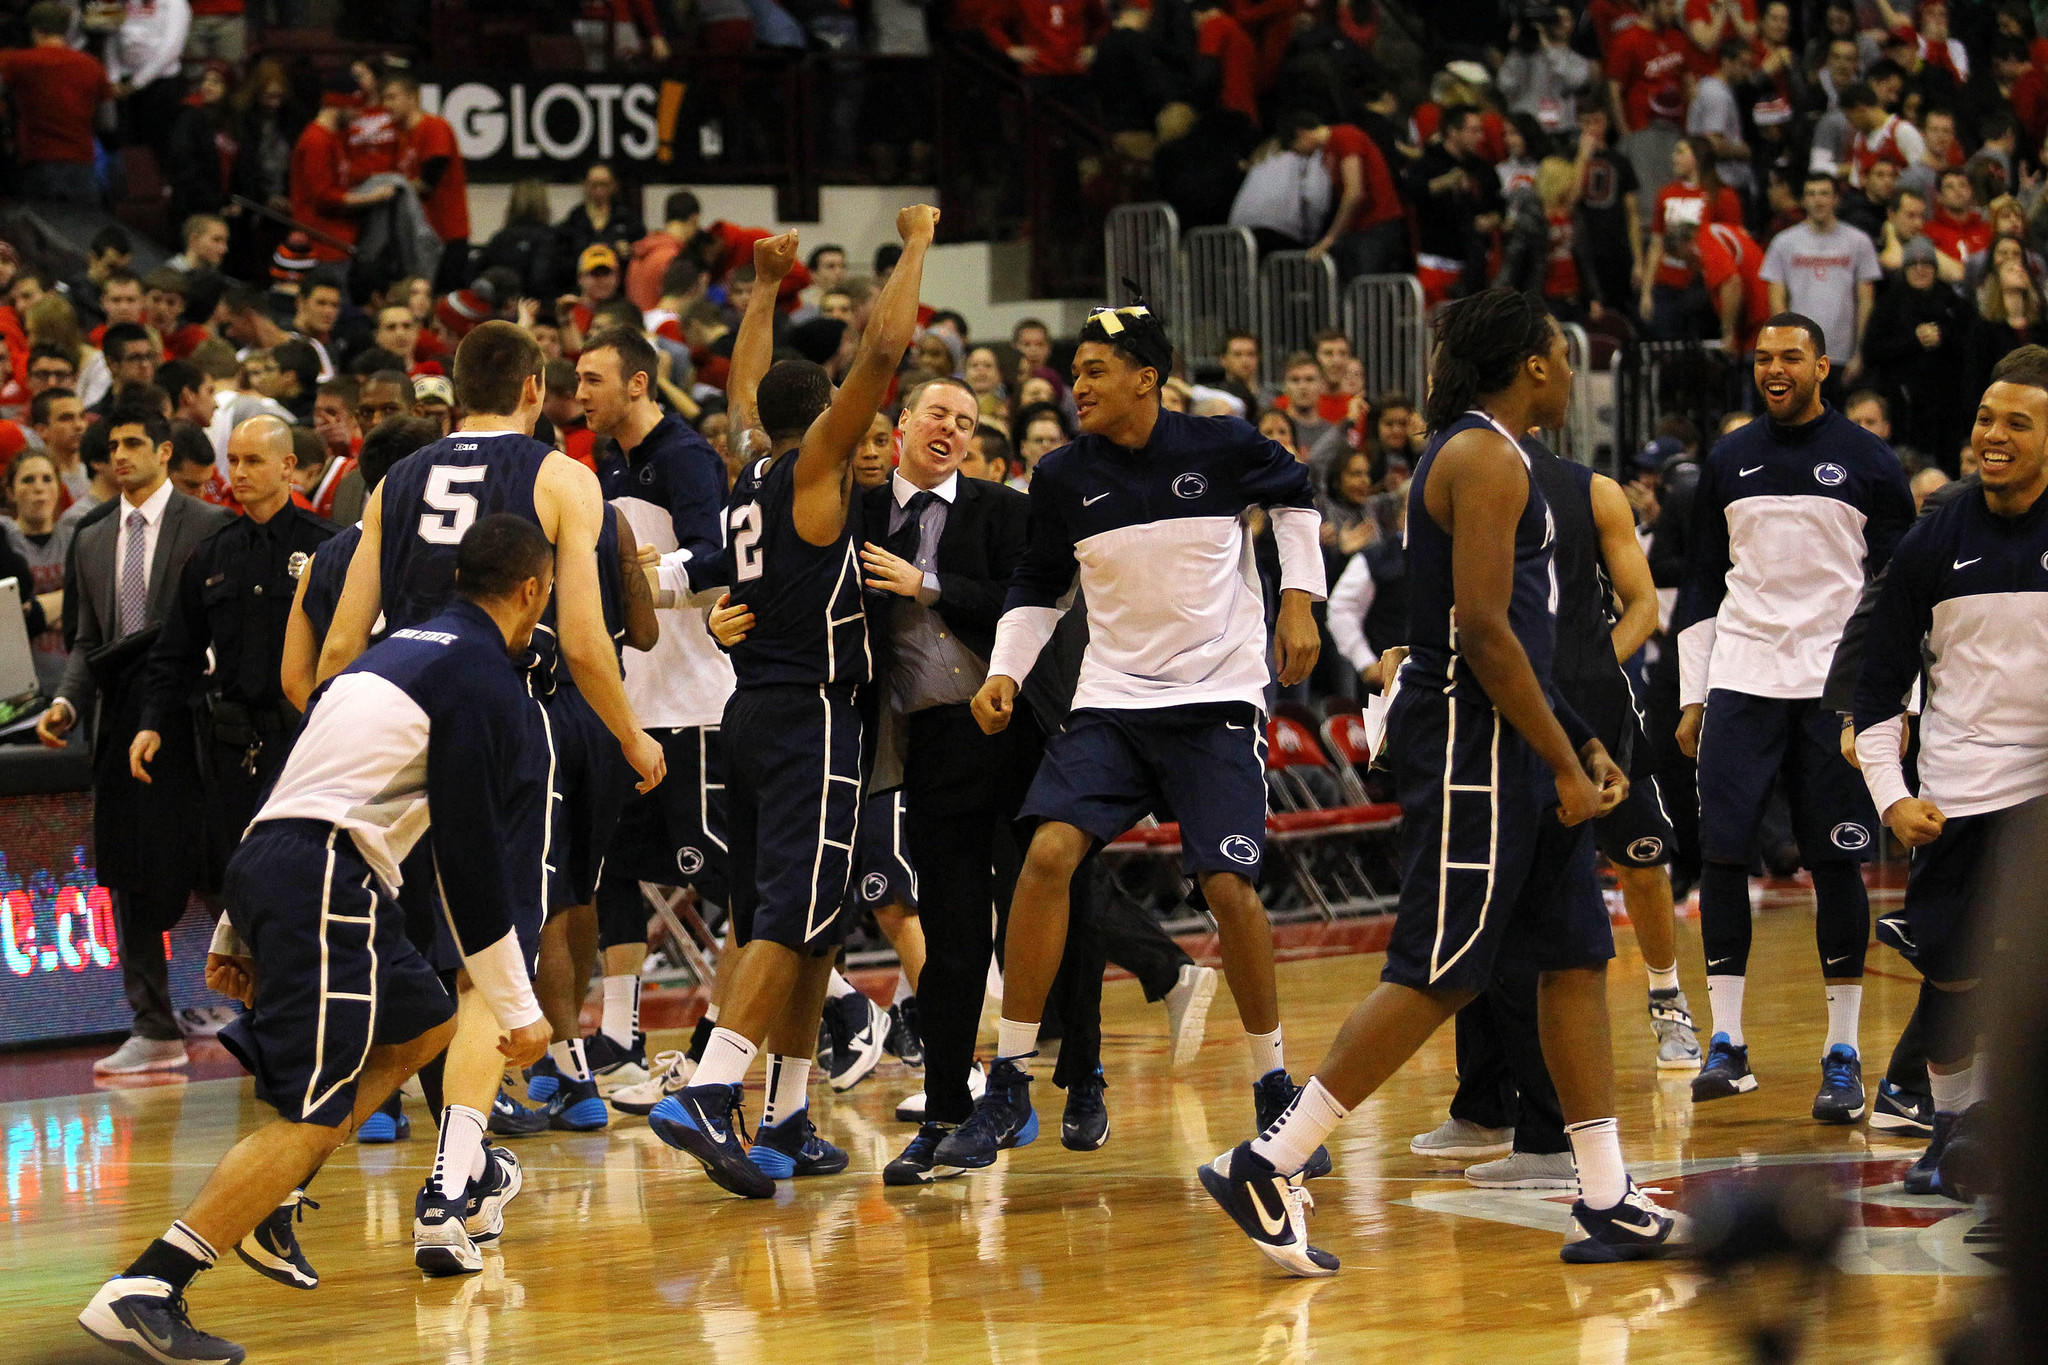 Penn State celebrates on the floor after defeating Ohio State 71-70 in overtime at Schottenstein Center.